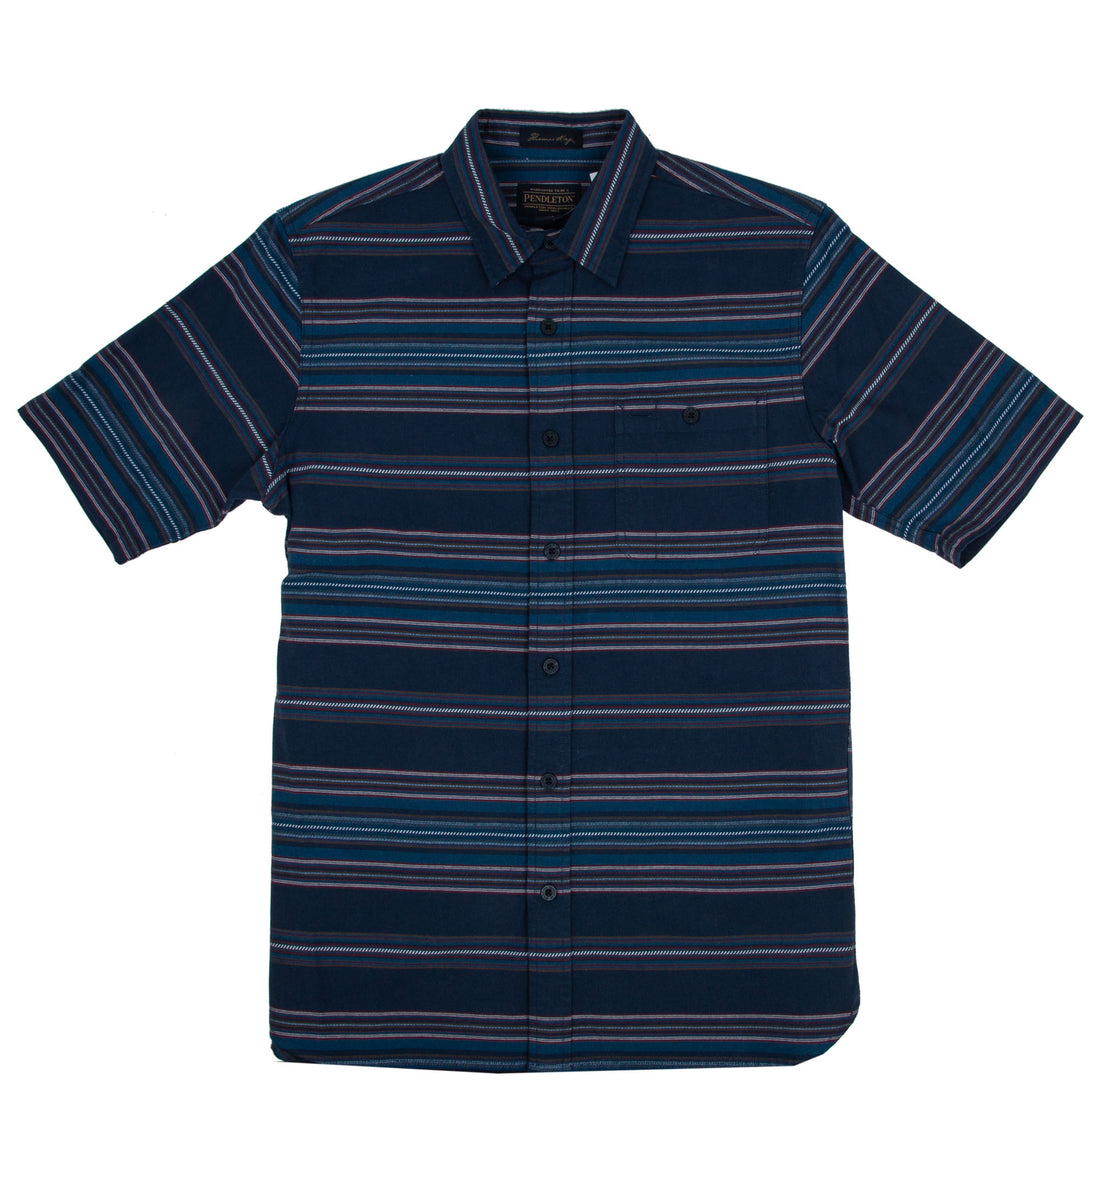 Pendleton Kay Street Shirt - Tops - Iron and Resin